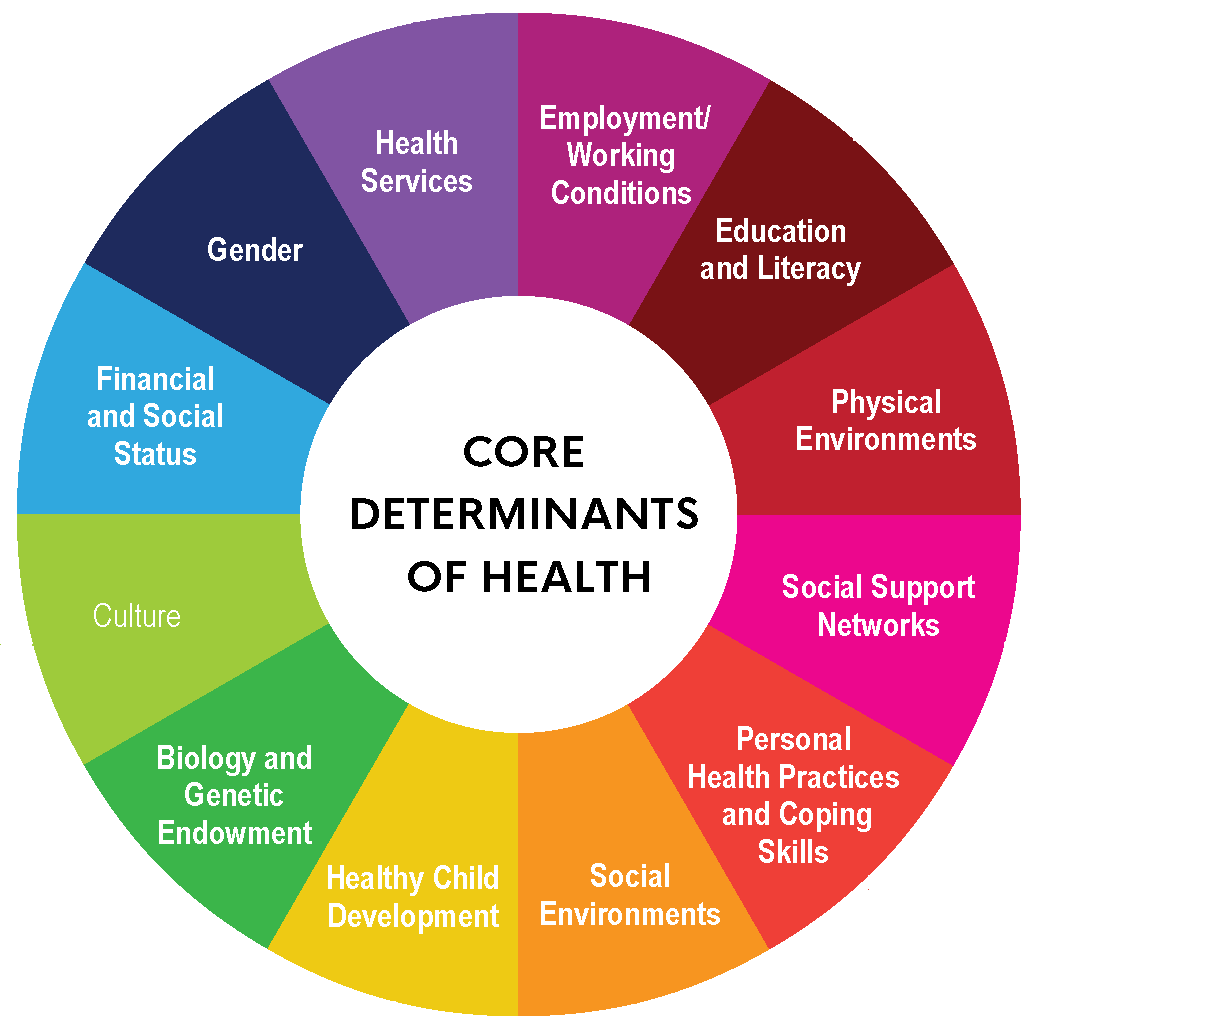 Core determinants of health framework